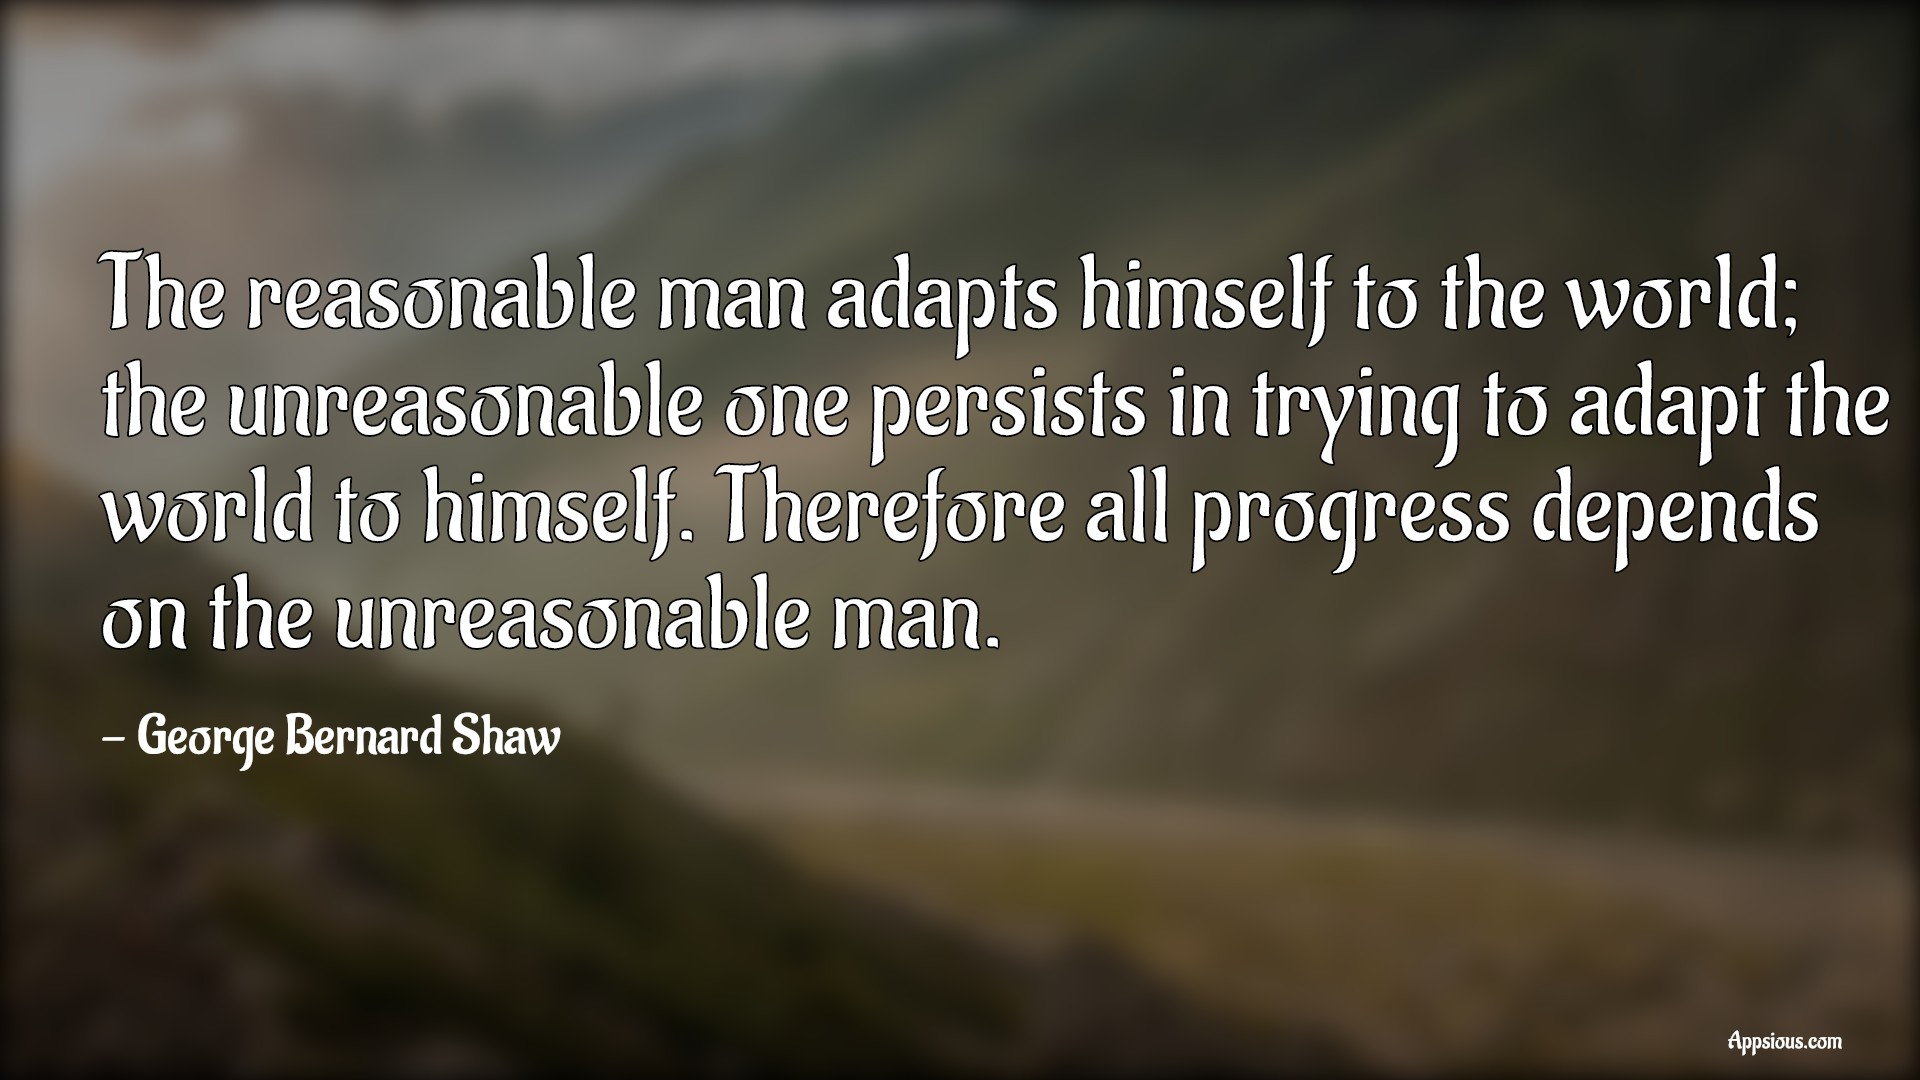 The reasonable man adapts himself to the world; the unreasonable one persists in trying to adapt the world to himself. Therefore all progress depends on the unreasonable man.